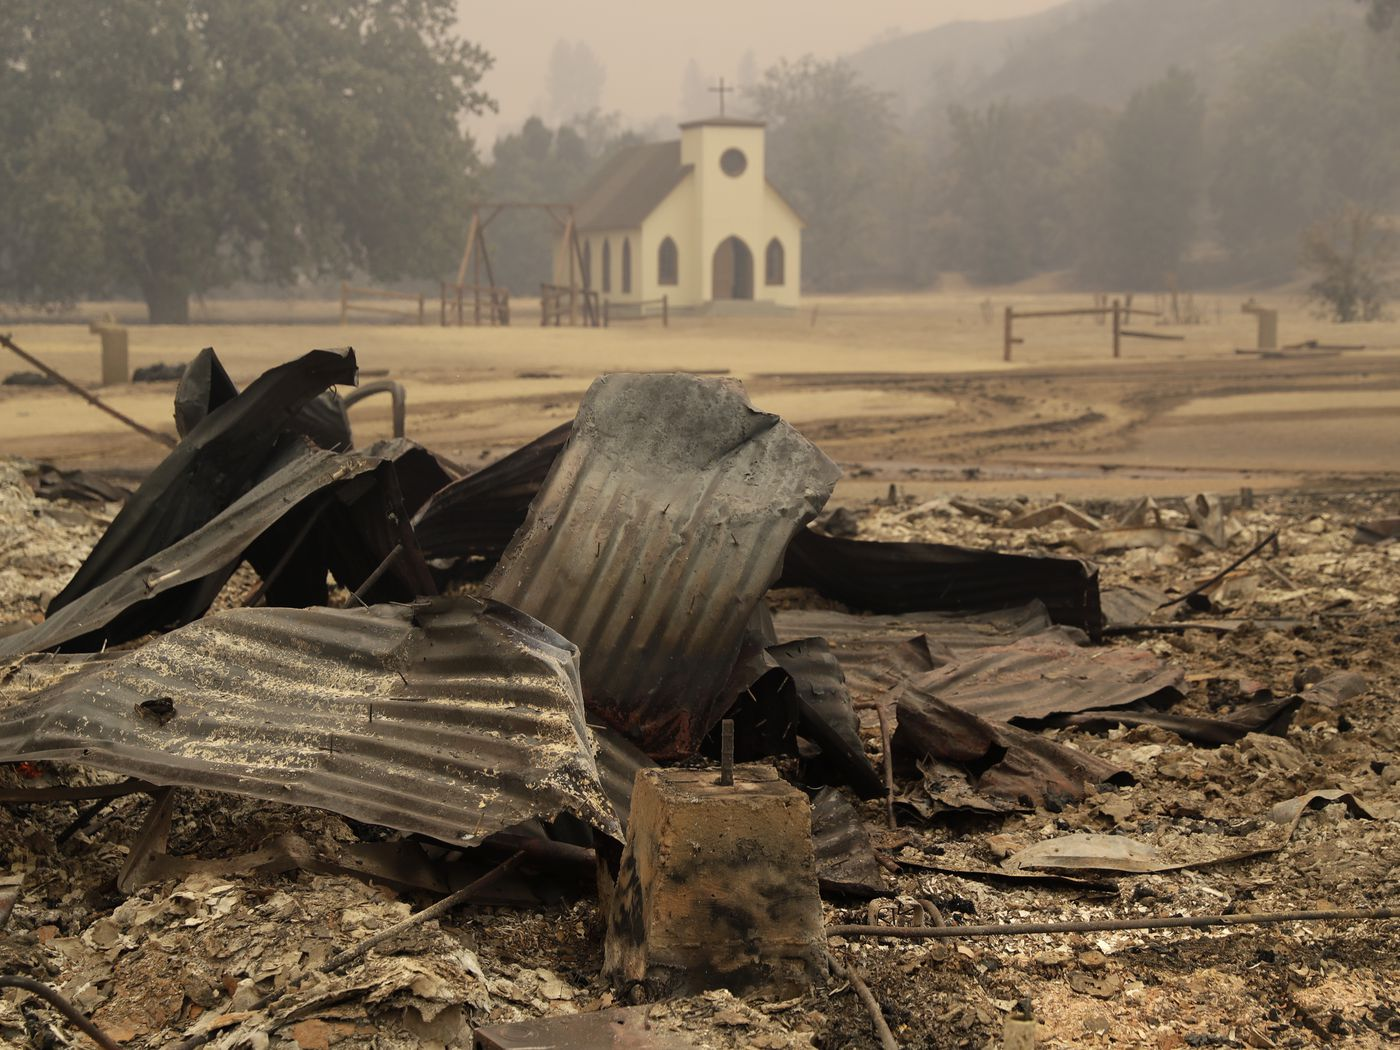 Malibu fires: Paramount Ranch destroyed, M*A*S*H set nearly